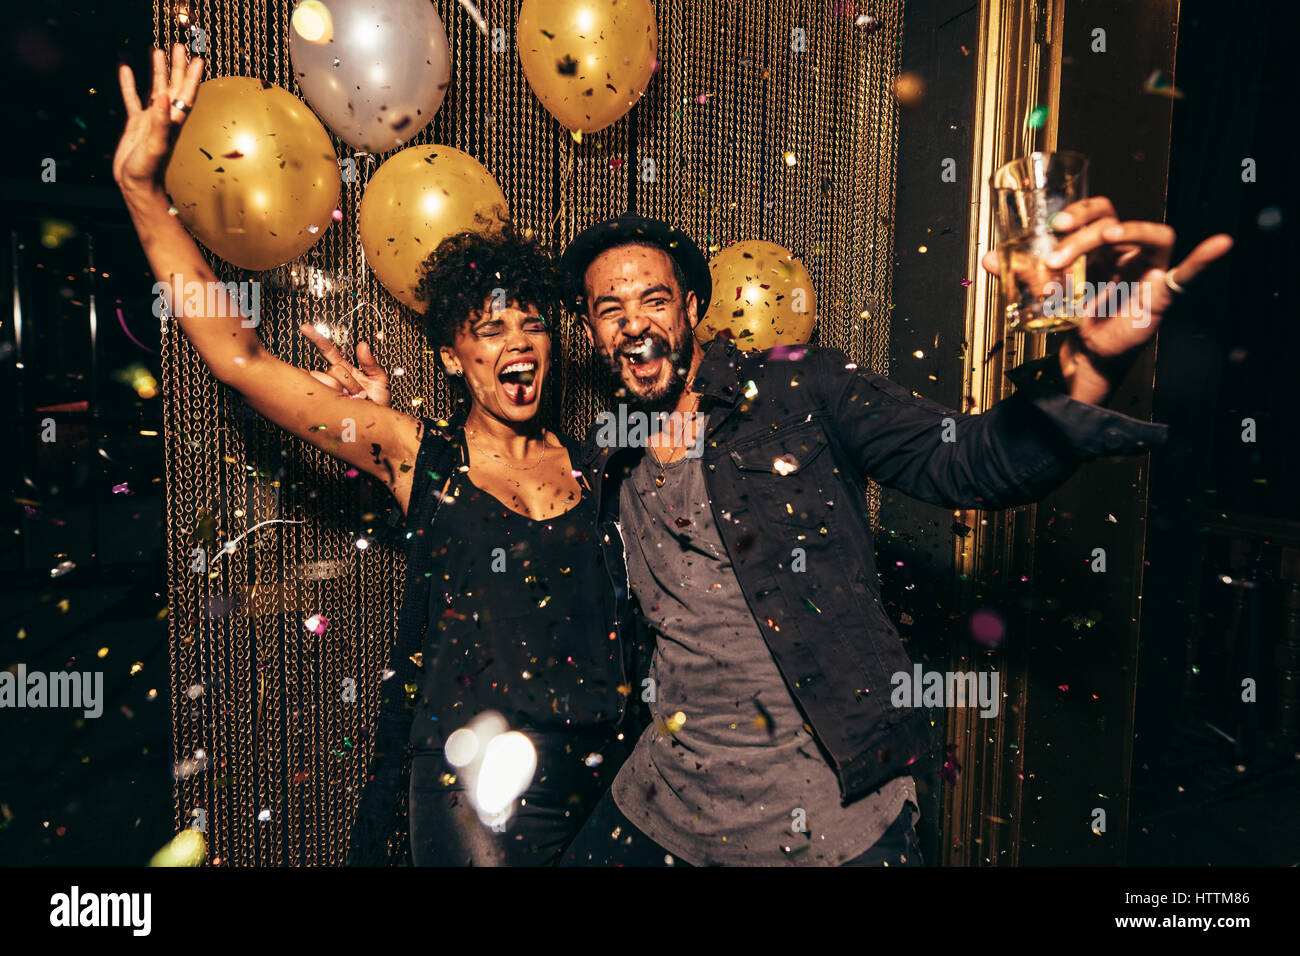 Shot of energetic couple dancing in the night club. Young man and woman having fun at pub party. - Stock Image